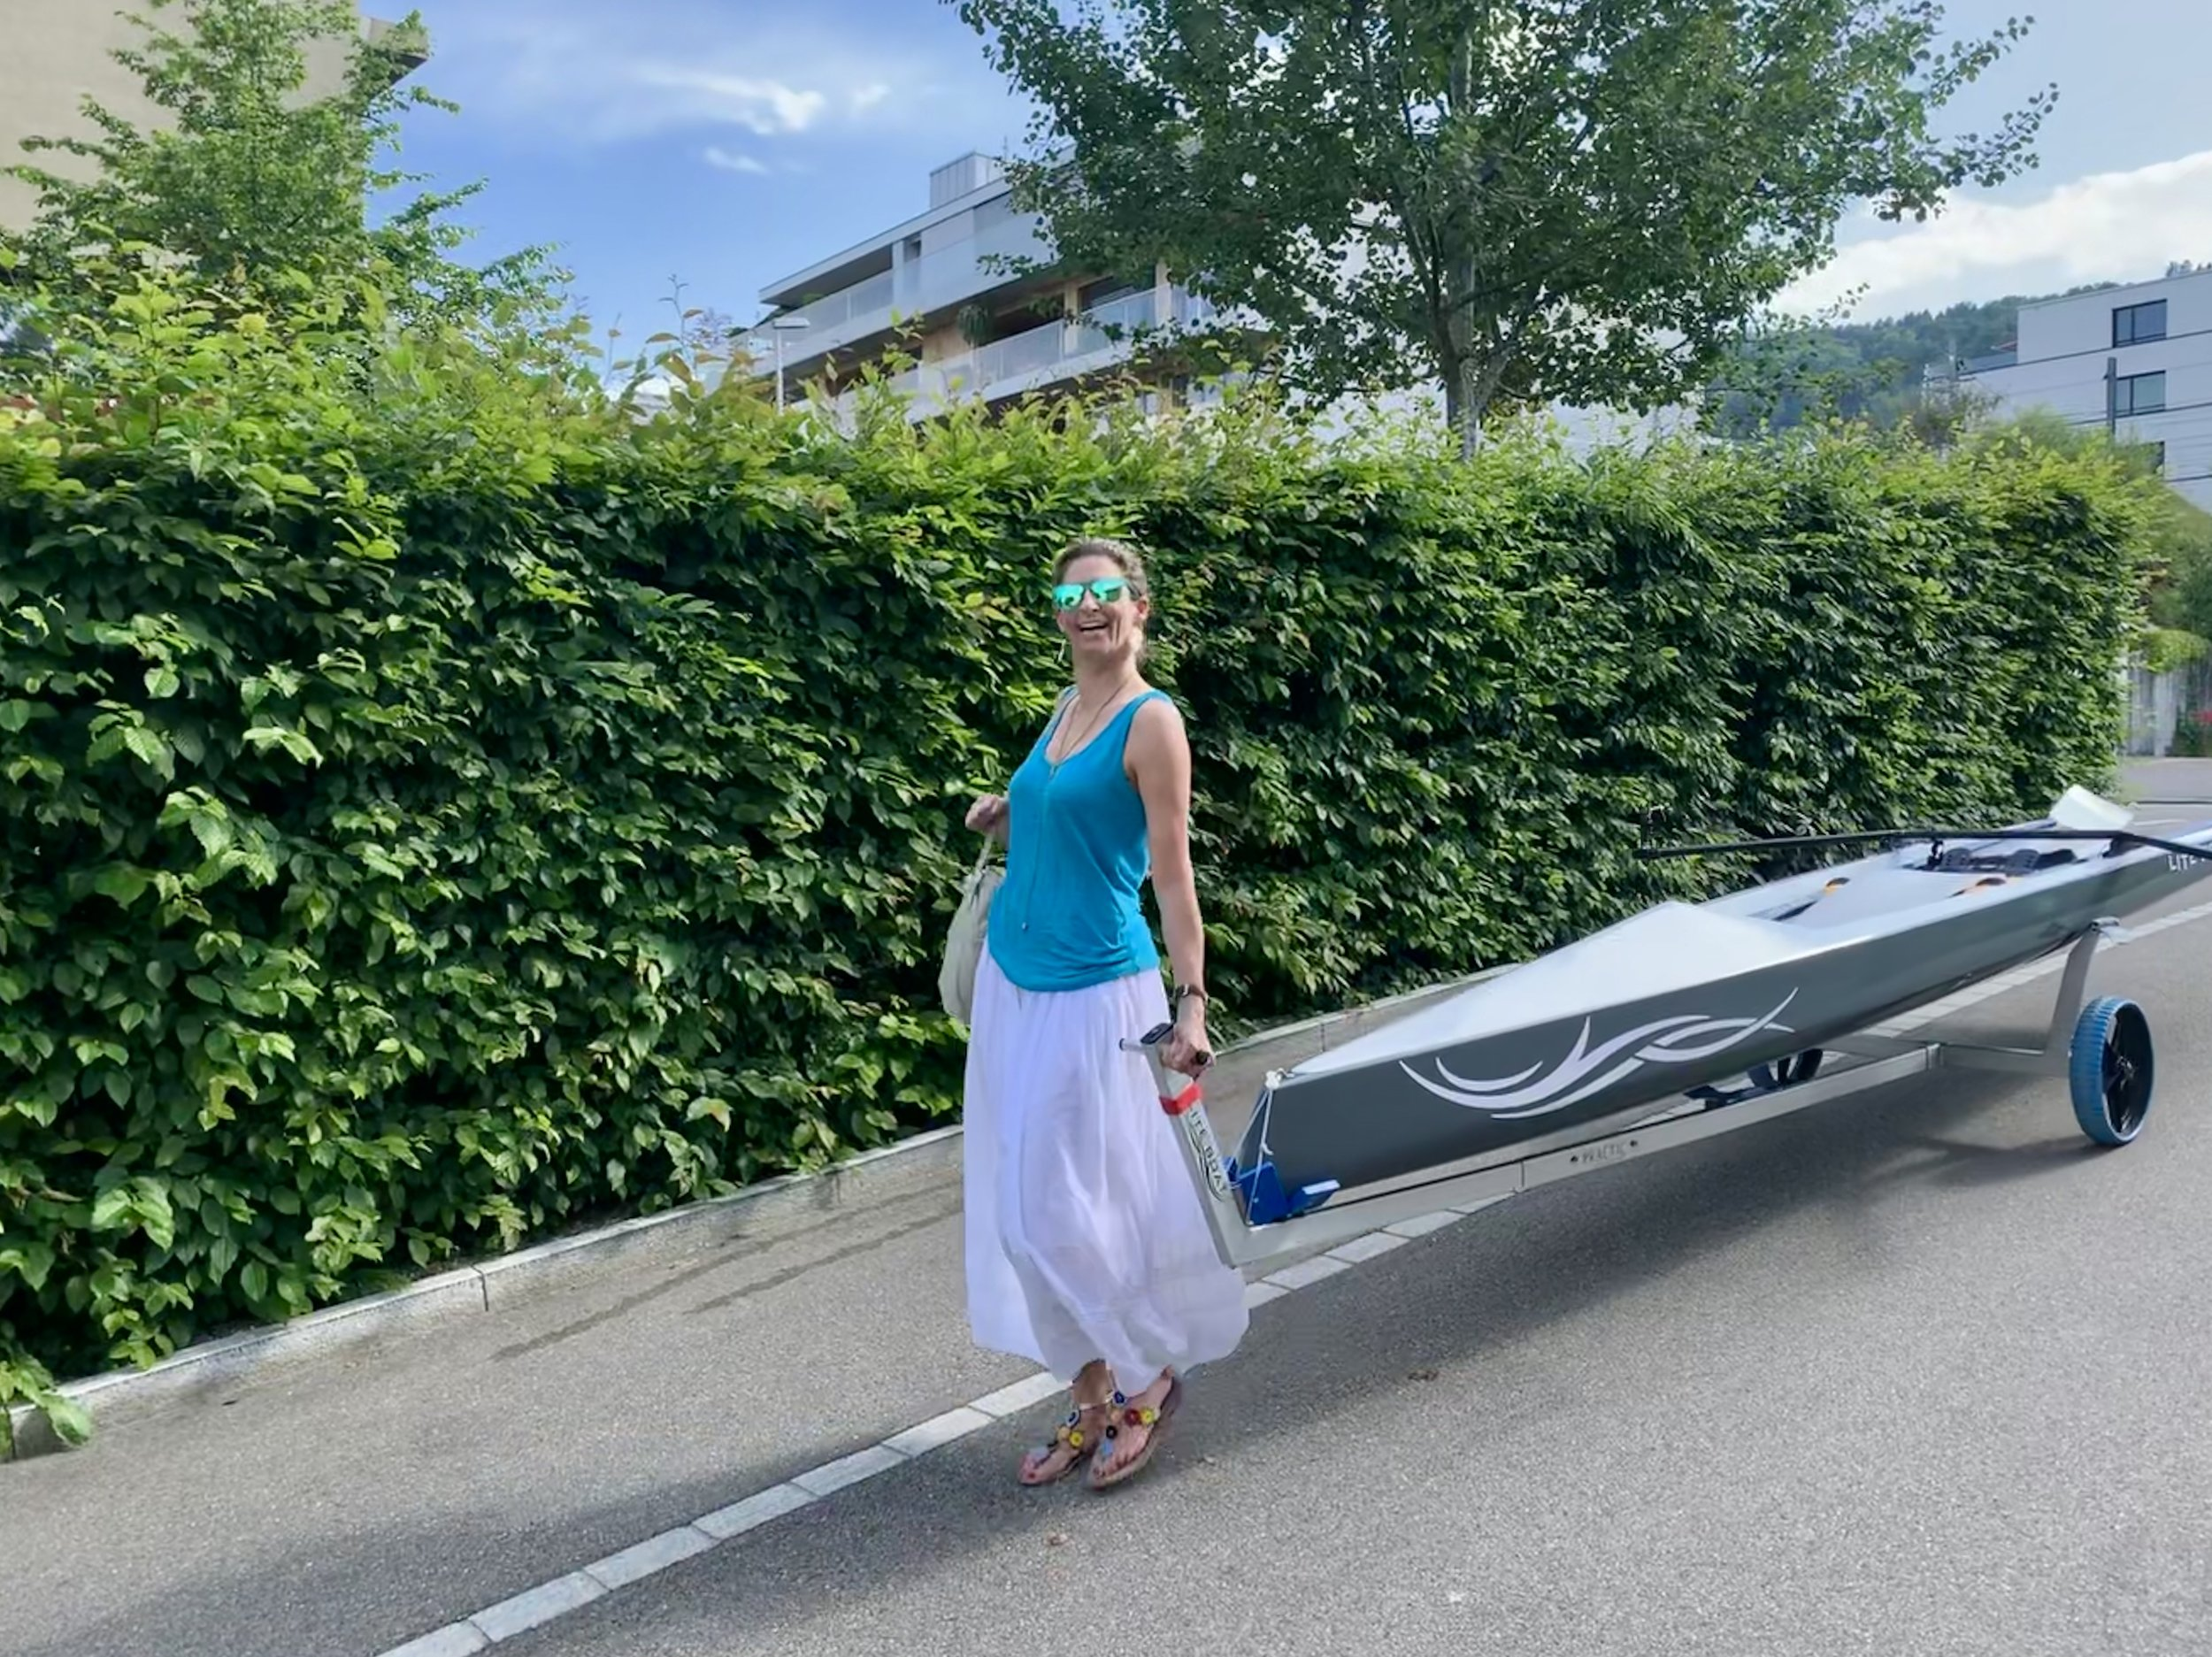 A woman and her first boat